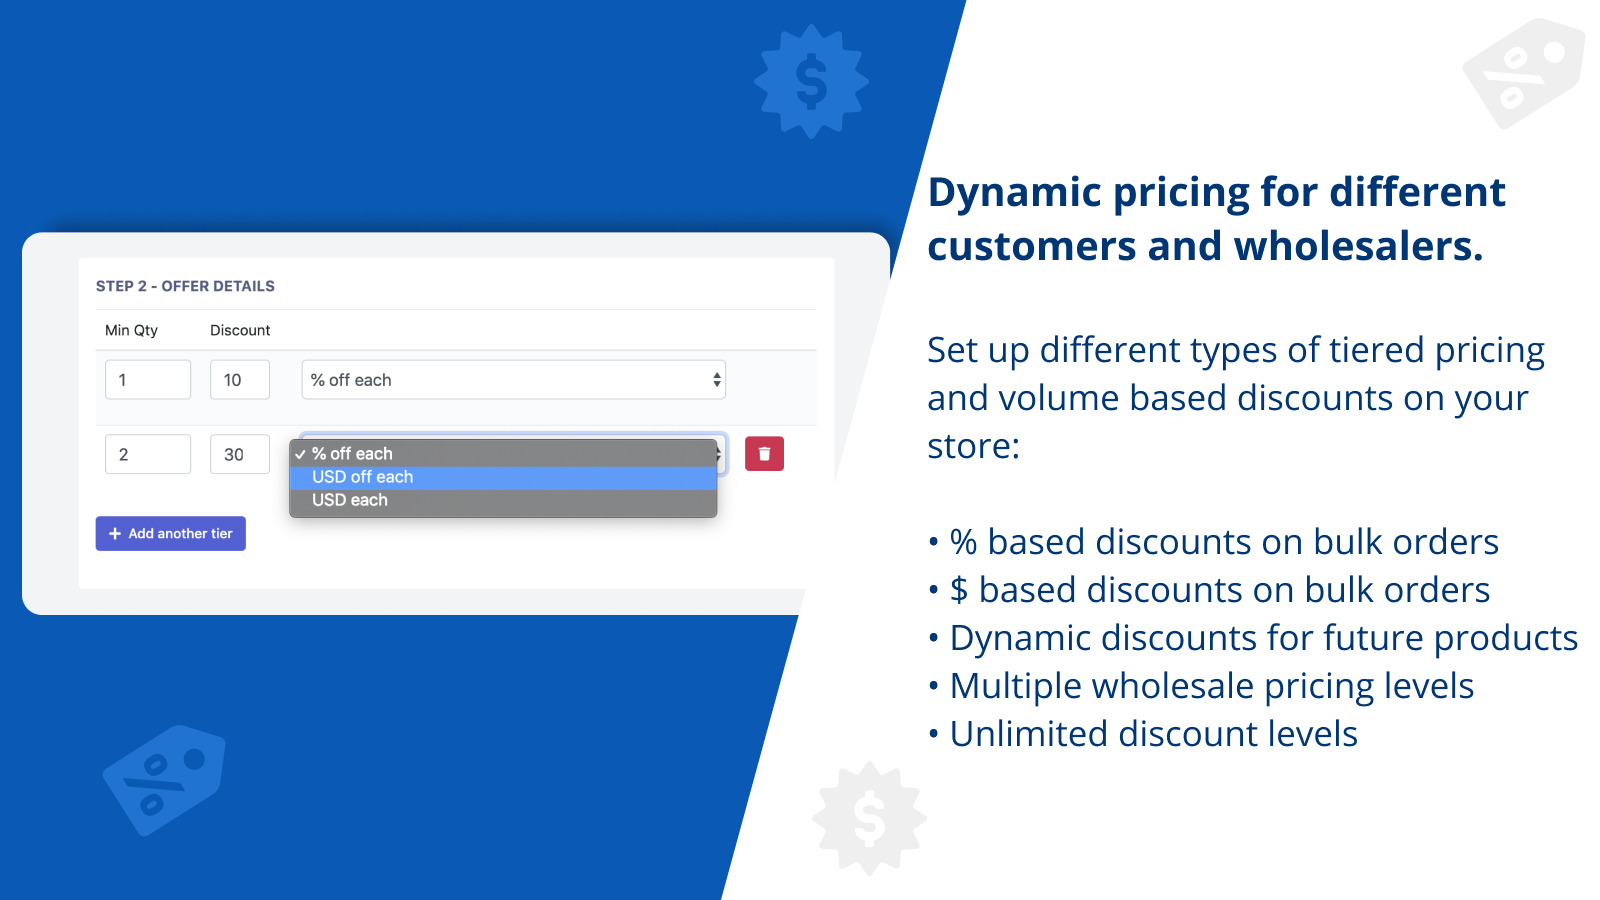 Dynamic pricing for different customers